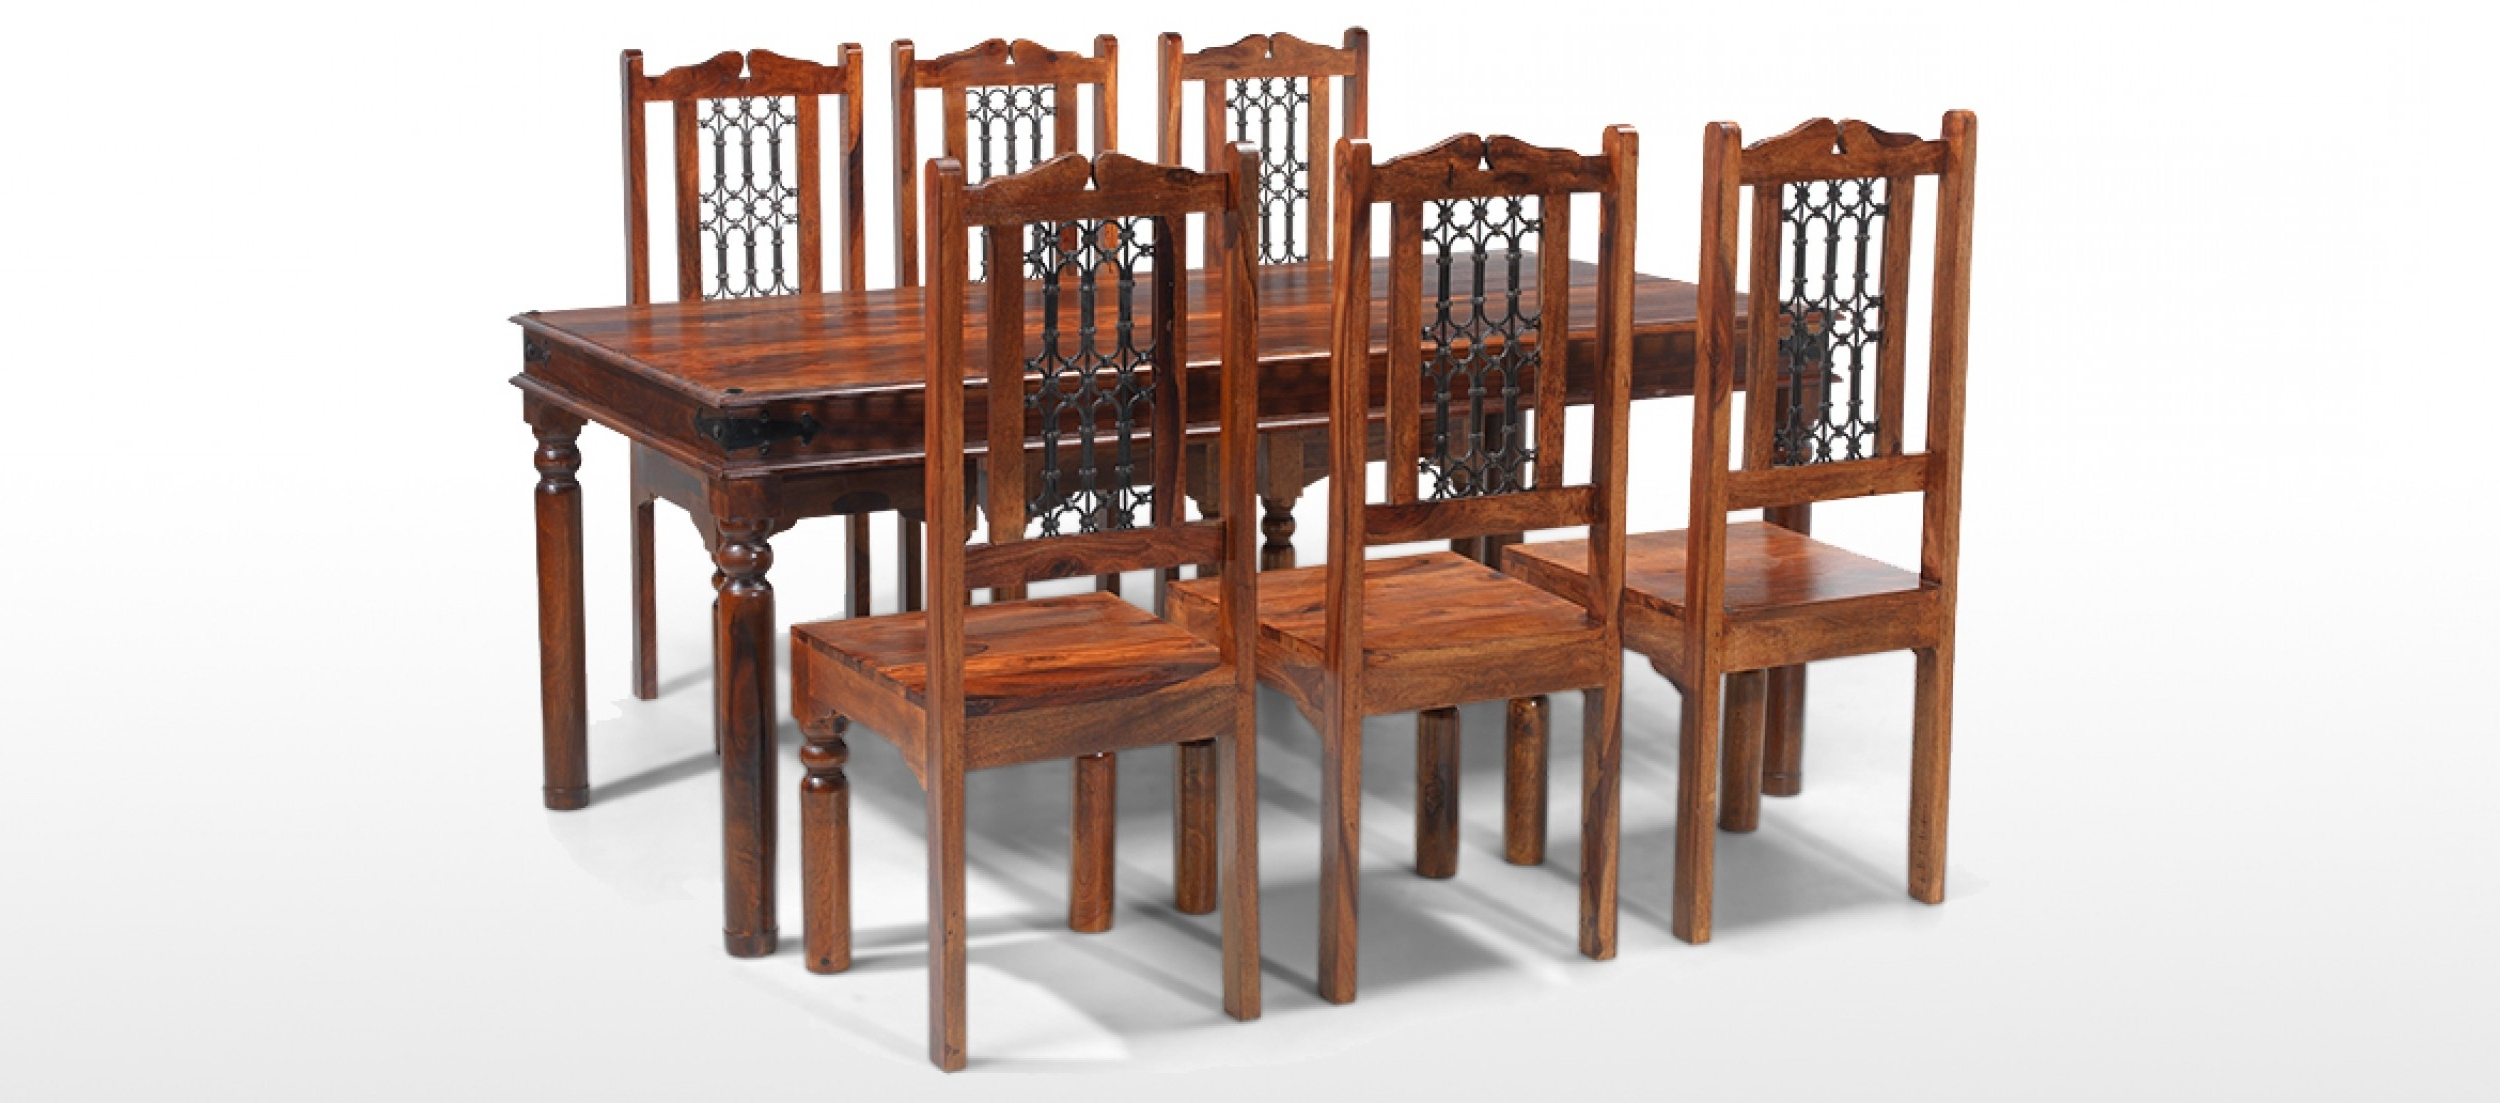 Widely Used Sheesham Dining Tables 8 Chairs Pertaining To Jali Sheesham 180 Cm Thakat Dining Table And 6 Chairs (View 12 of 25)